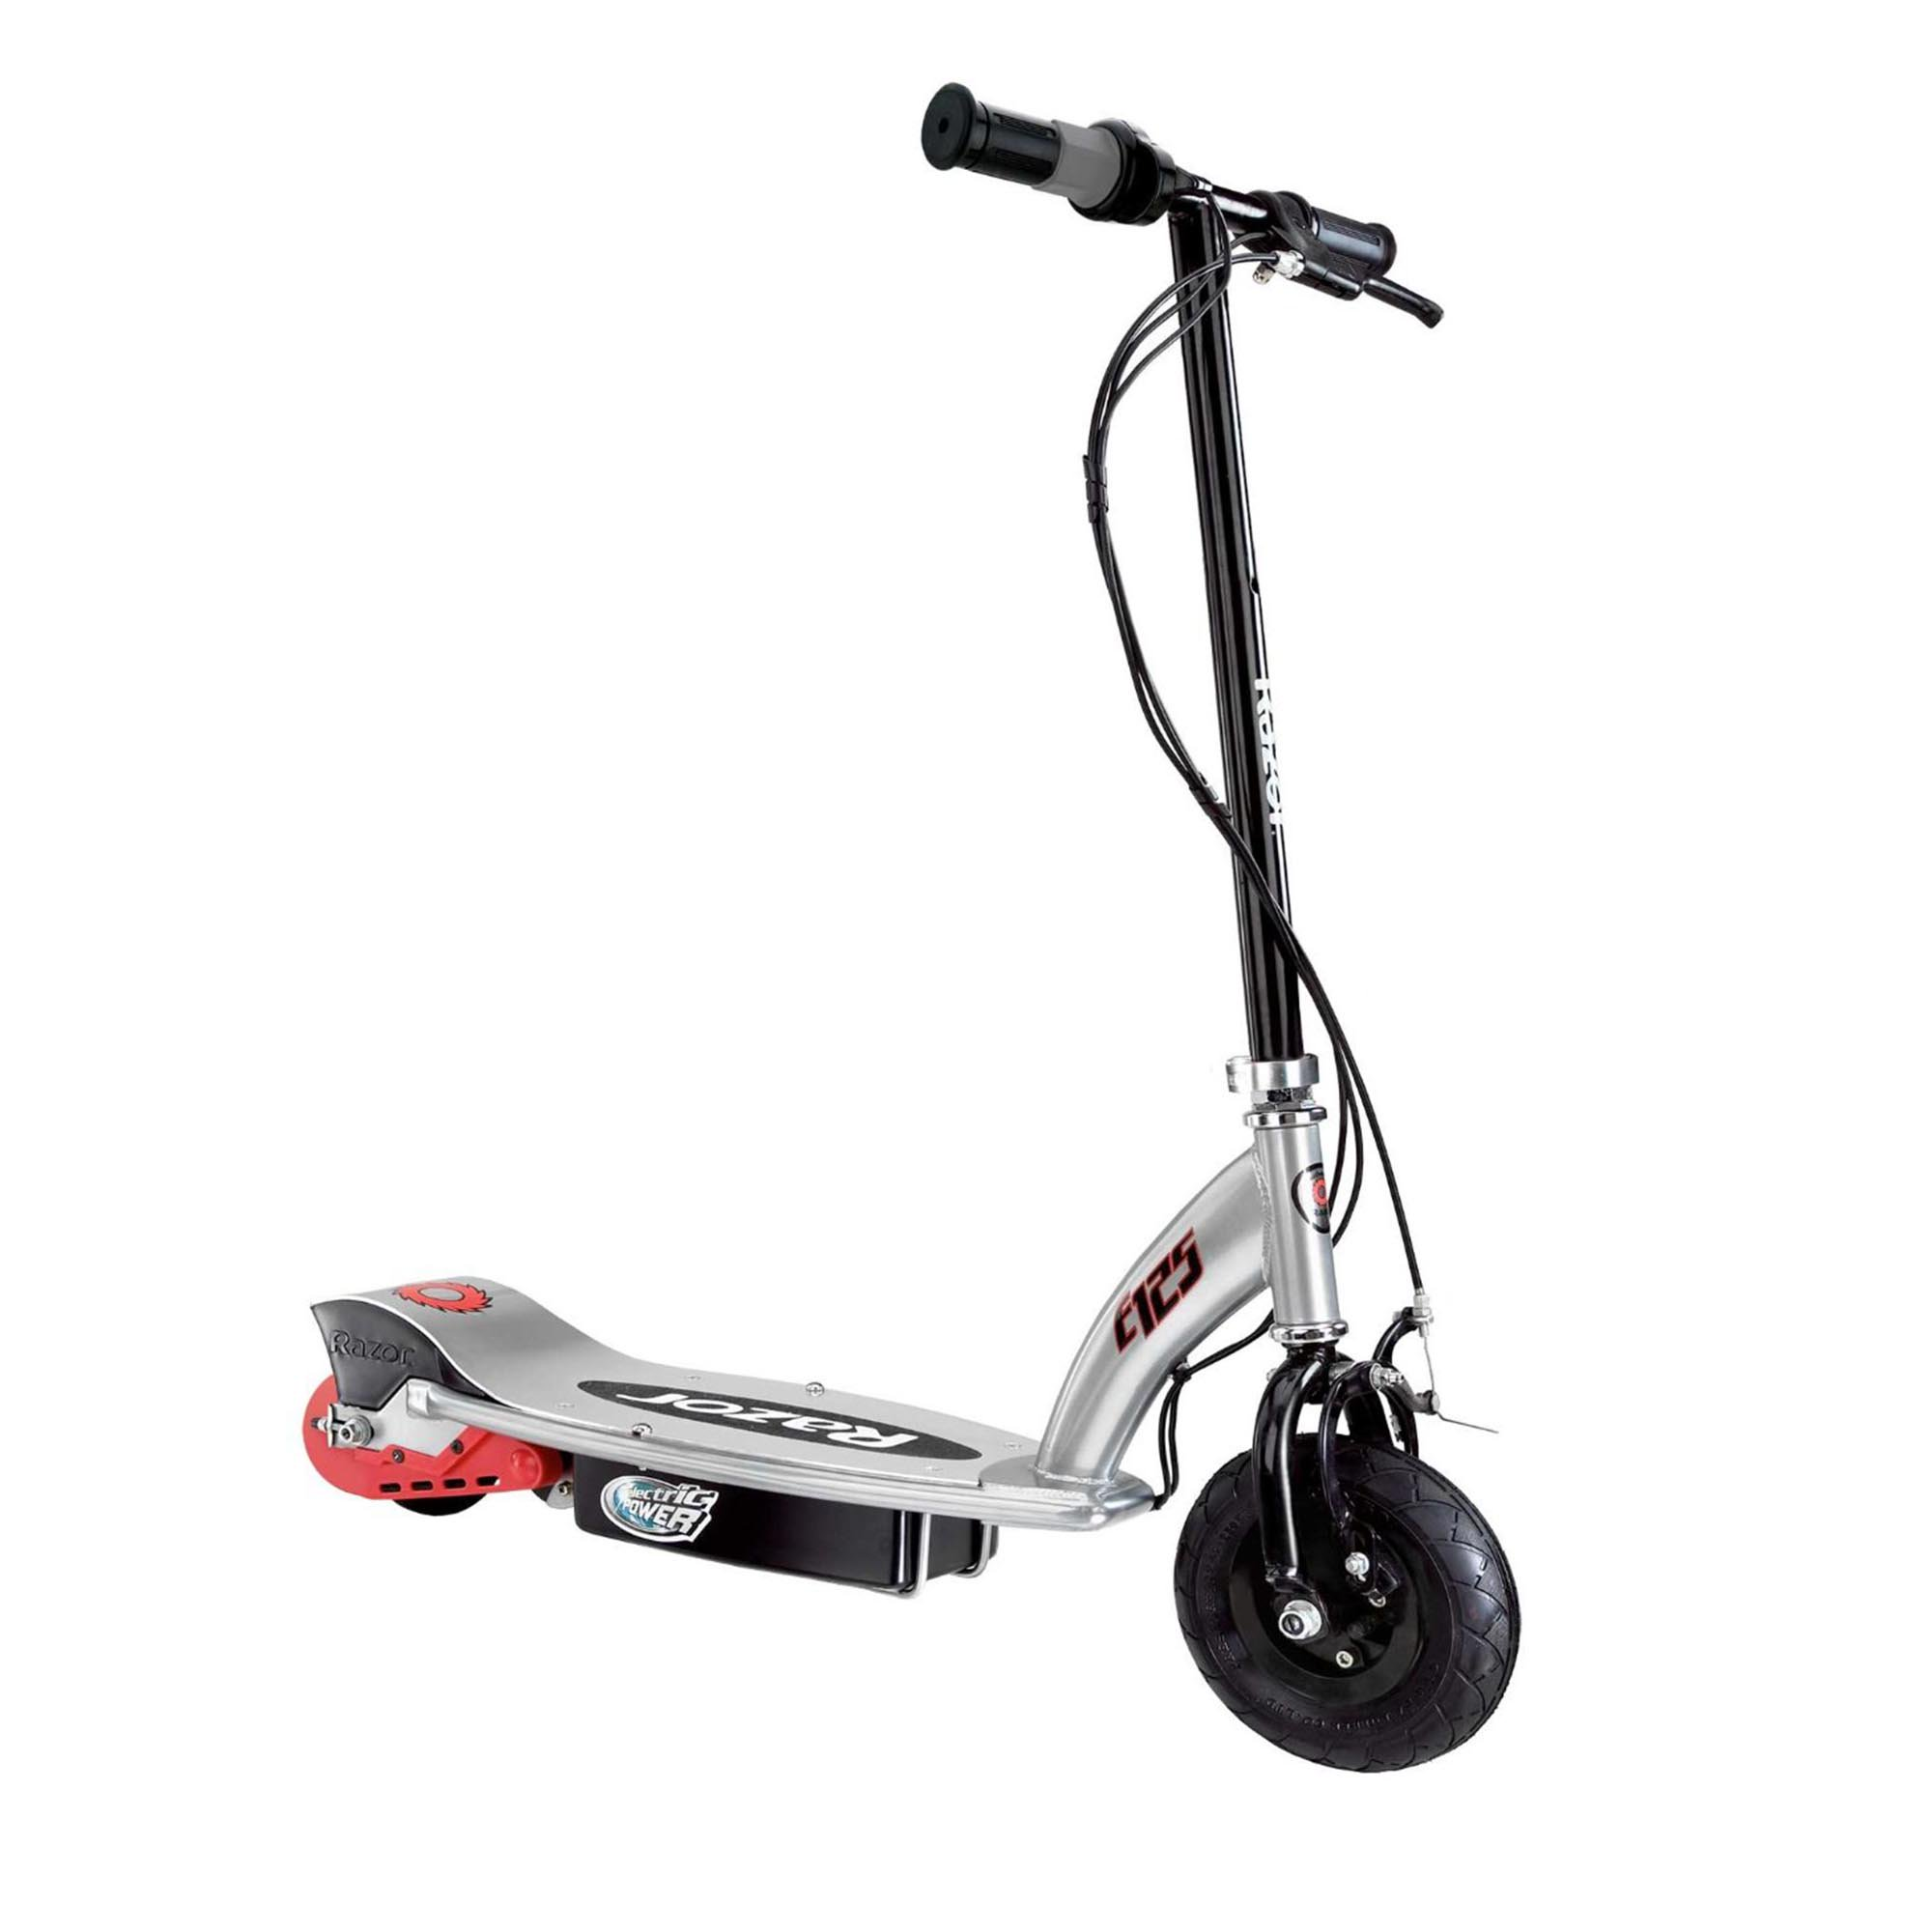 Razor E125 Motorized 24 Volt Rechargeable Battery Kids Electric Scooter, Black by Razor